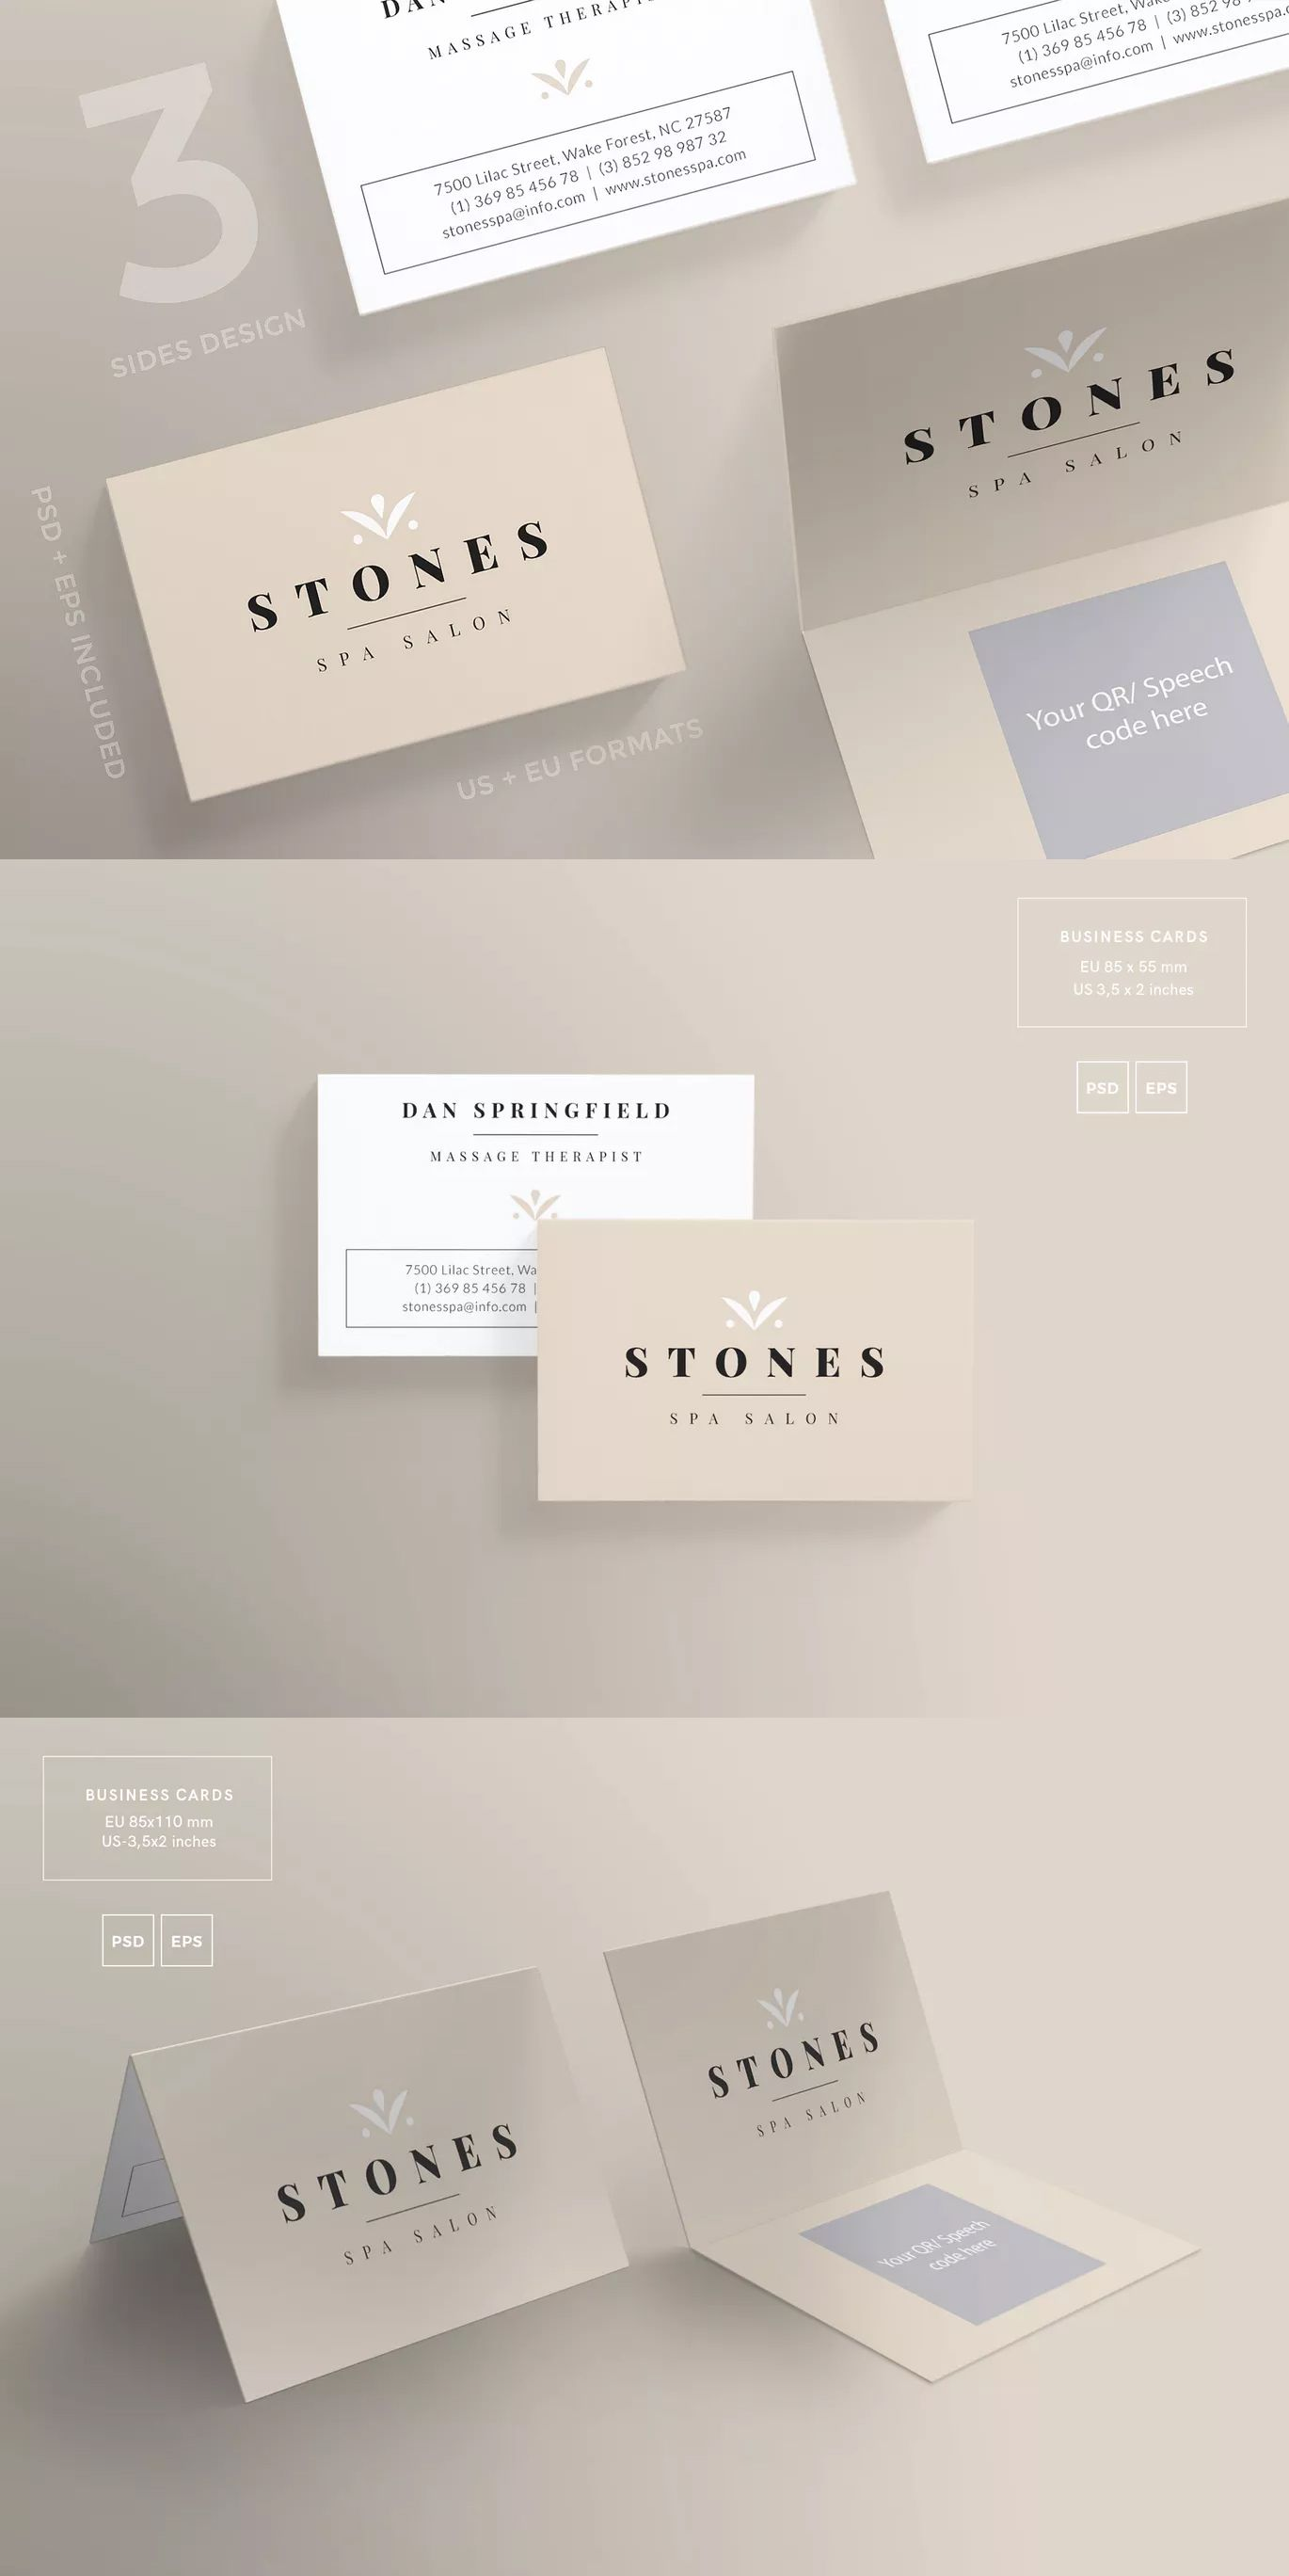 Spa Salon Business Card Template Eps Psd Download Here Https